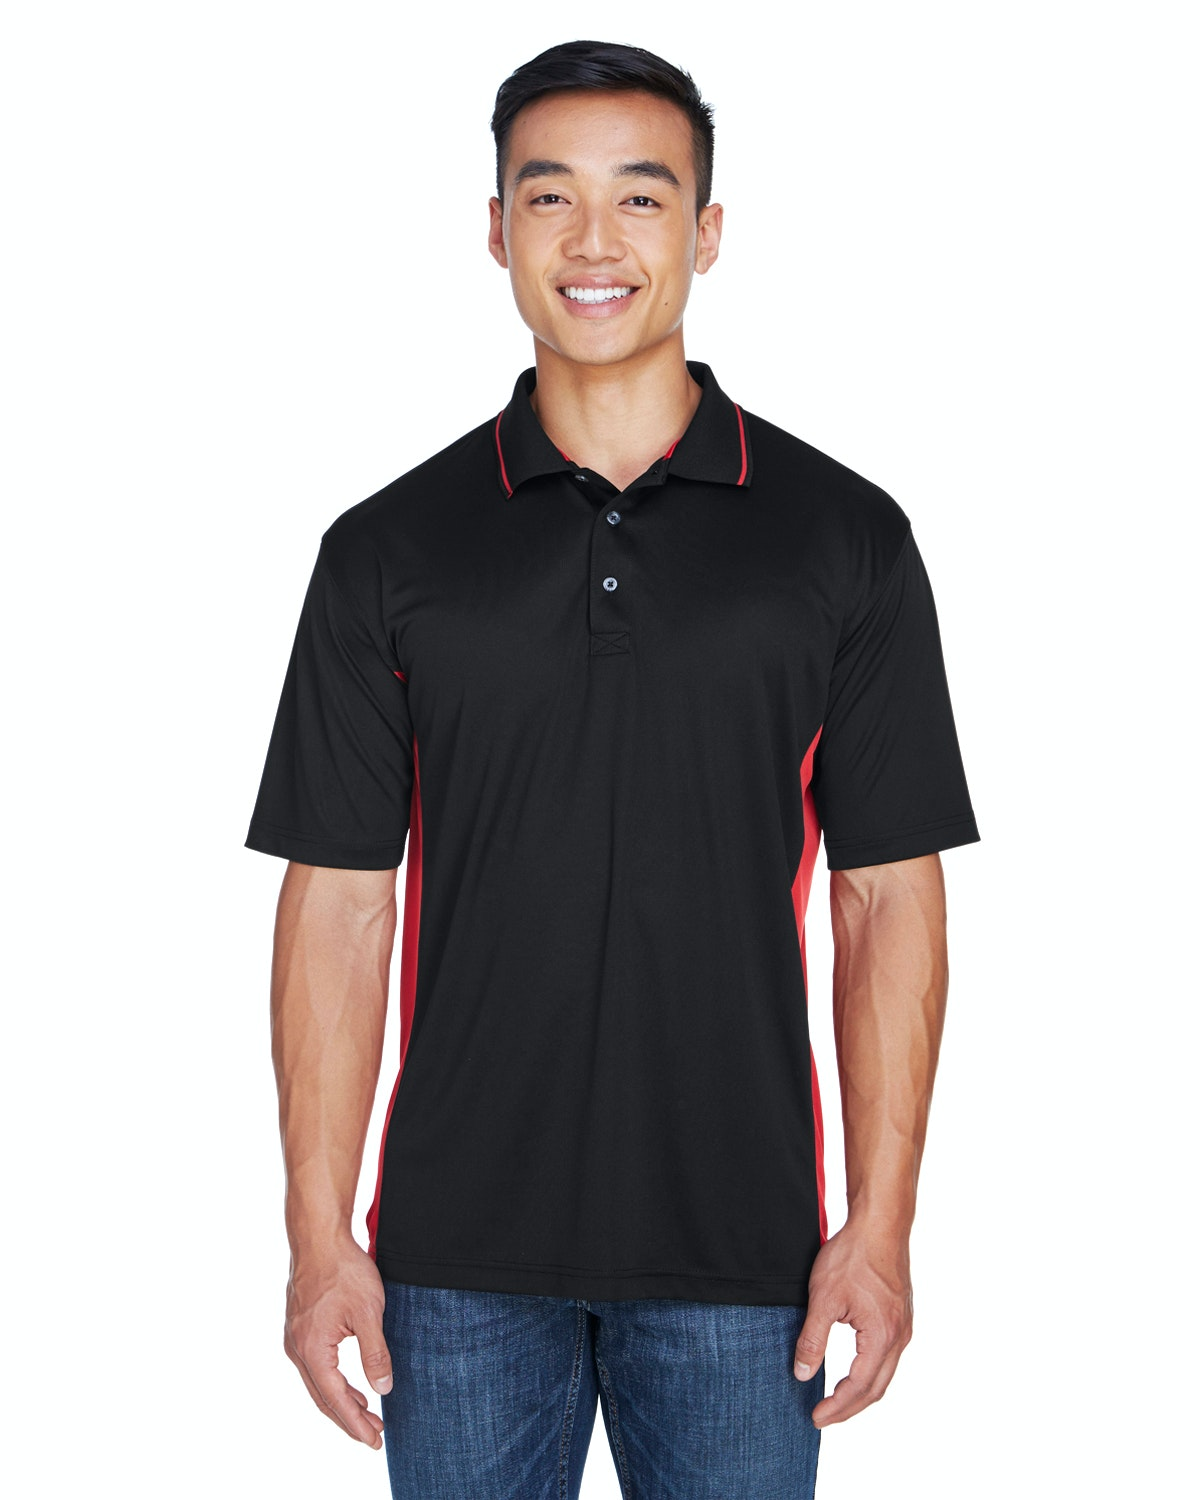 UltraClub 8406 Black/ Red